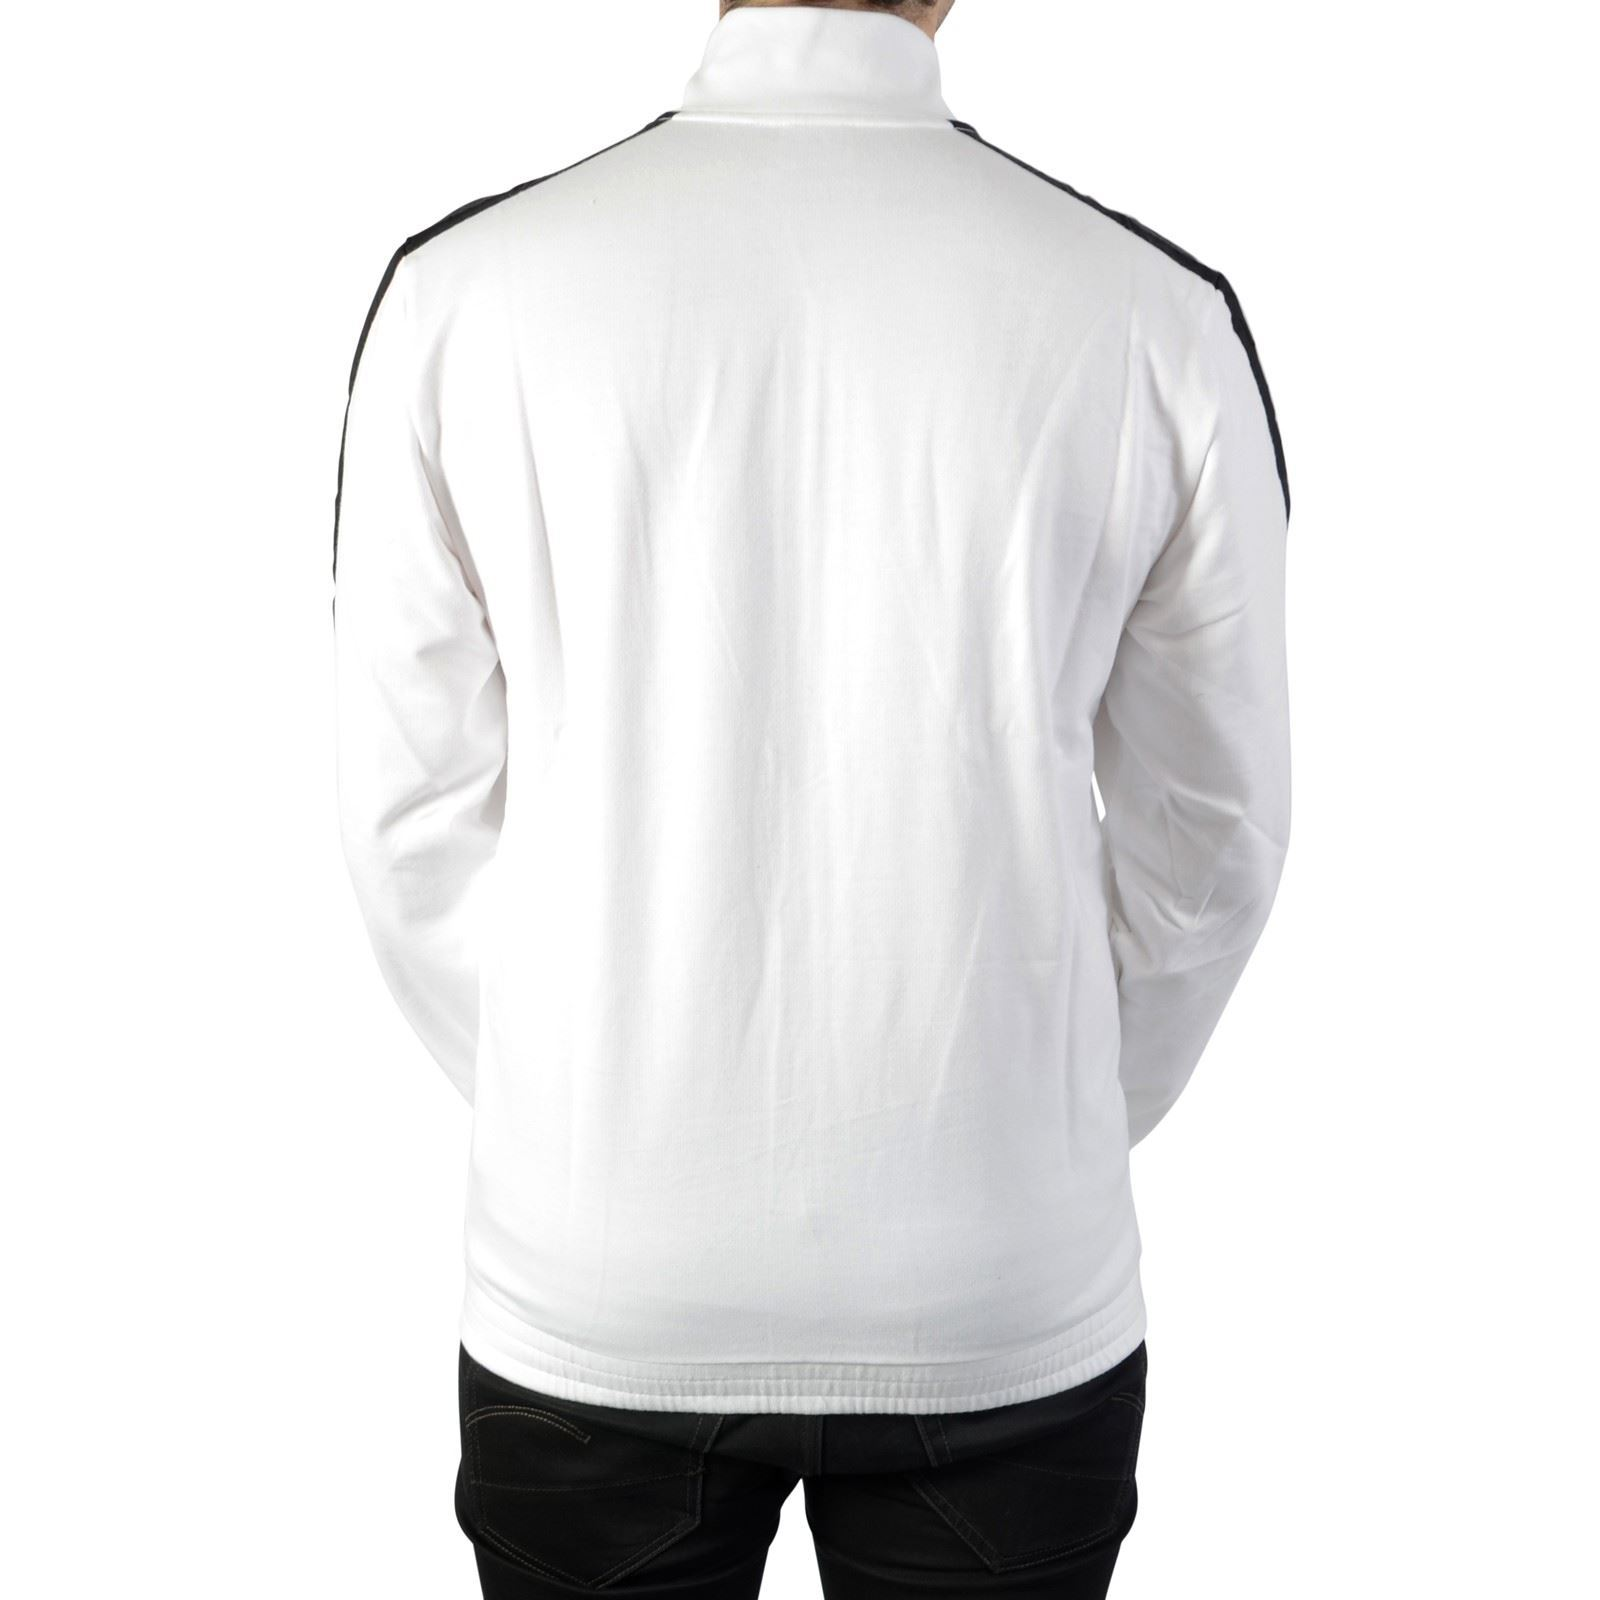 shirtBlanc Homme V Sweat shirtBlanc V Ea7 Ea7 Homme Sweat Homme shirtBlanc Ea7 Sweat Pk0wO8n